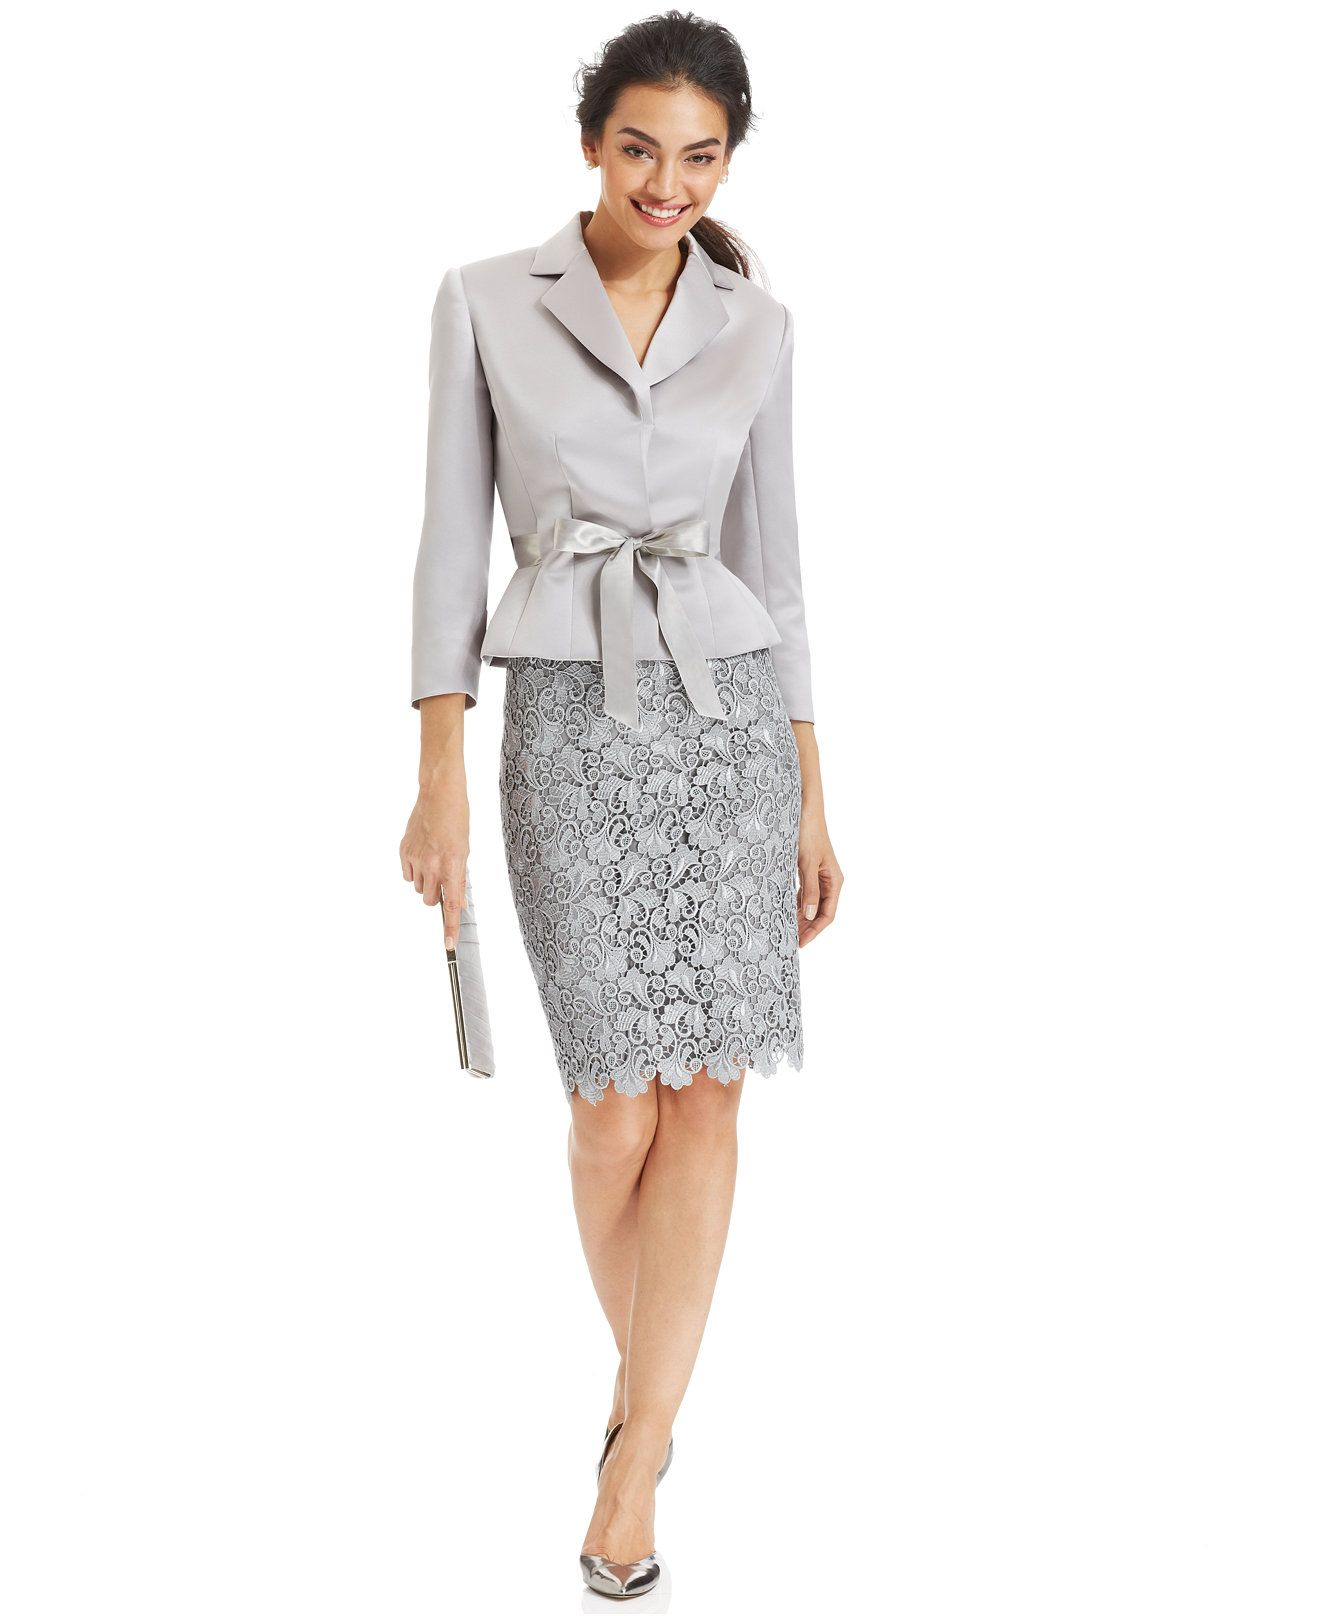 Tahari Asl Belted Jacket Lace Skirt Suit Wear To Work Women